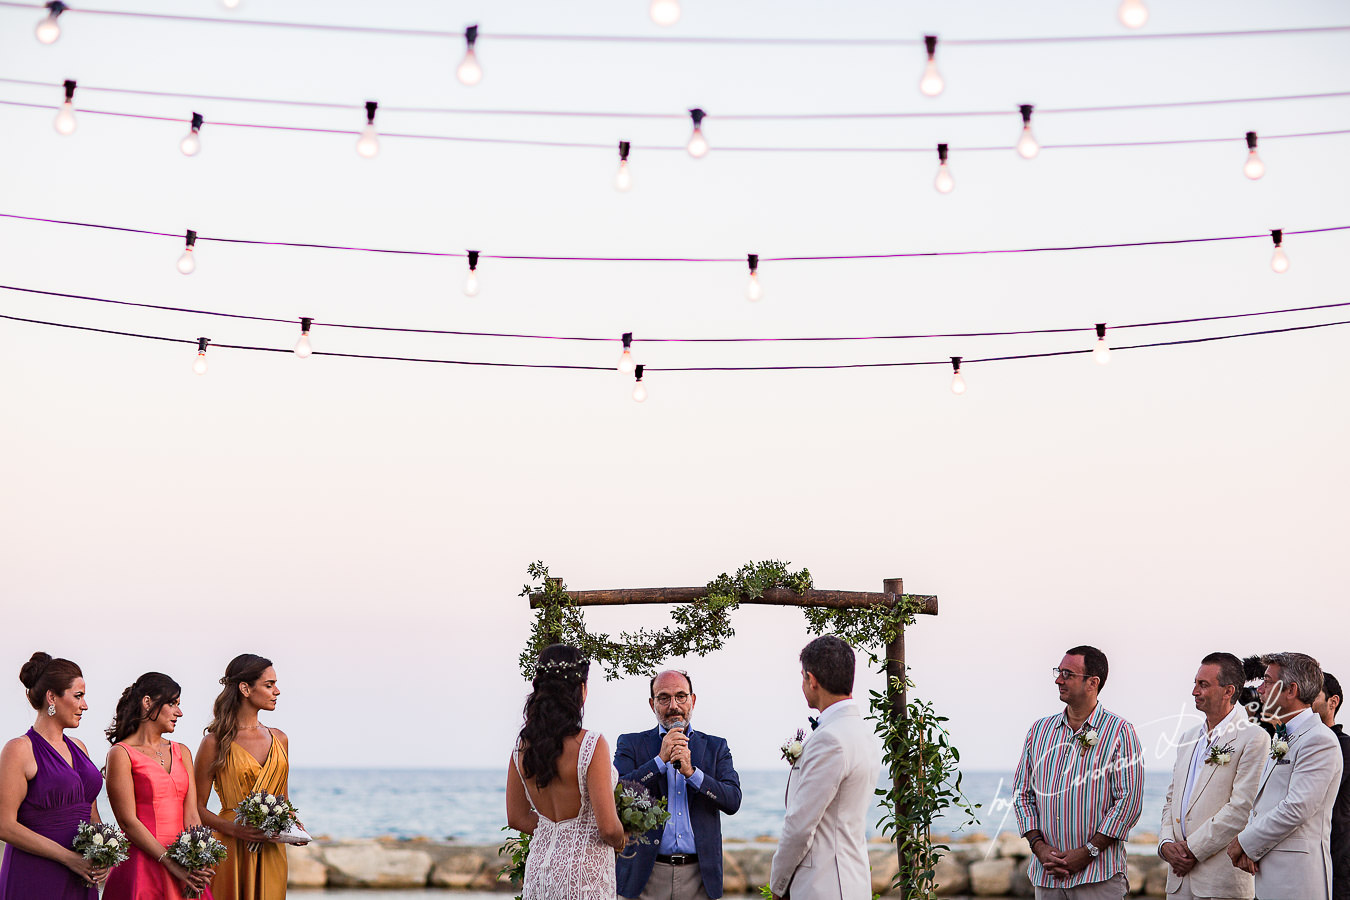 Wedding ceremony captured during a wedding photography at the Lighthouse Limassol, by Cyprus Photographer Cristian Dascalu.